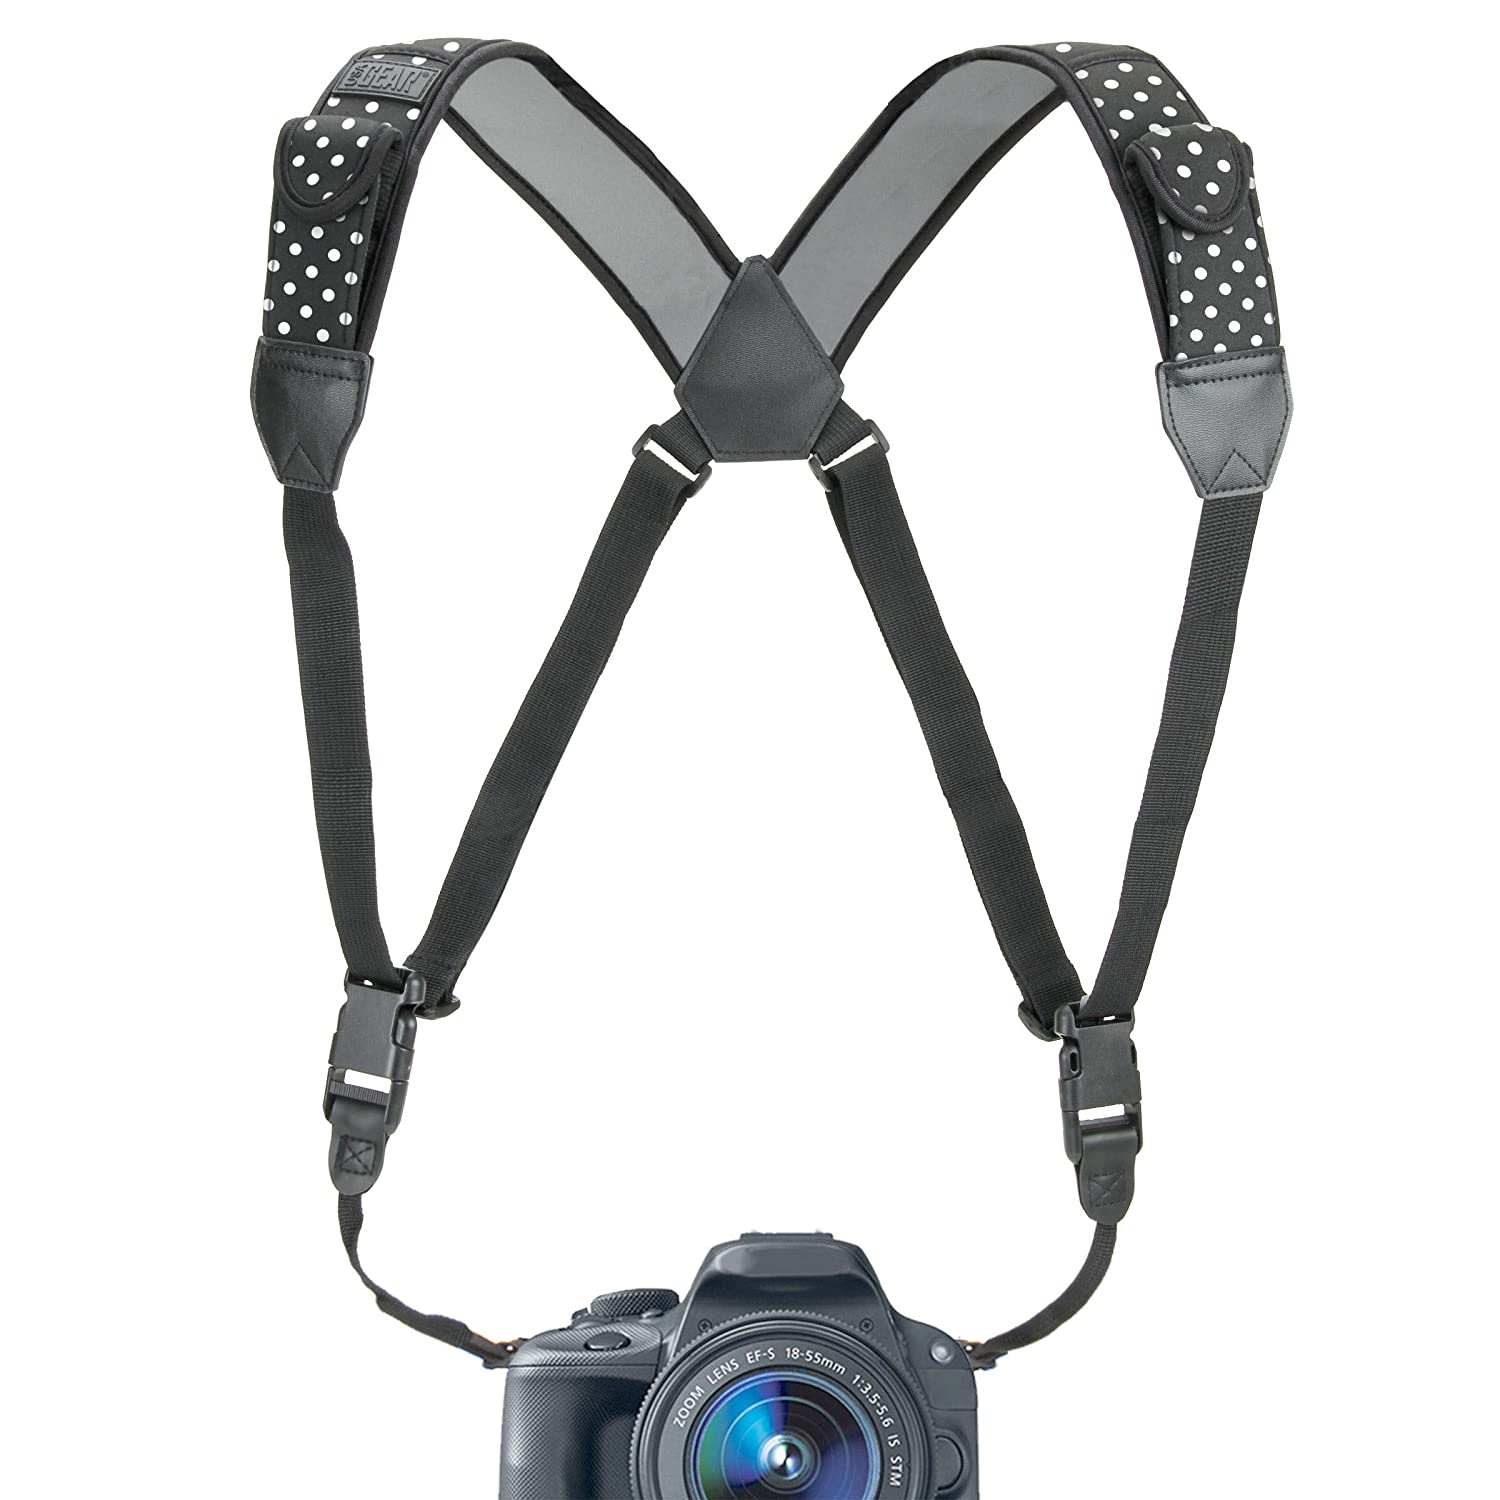 Camera Strap Chest Harness with Polka Dot Neoprene and Accessory Pockets by USA GEAR - Works with Canon , Nikon , Fujifilm , Sony , Panasonic and More DSLR , Point & Shoot , Mirrorless Cameras Accessory Power